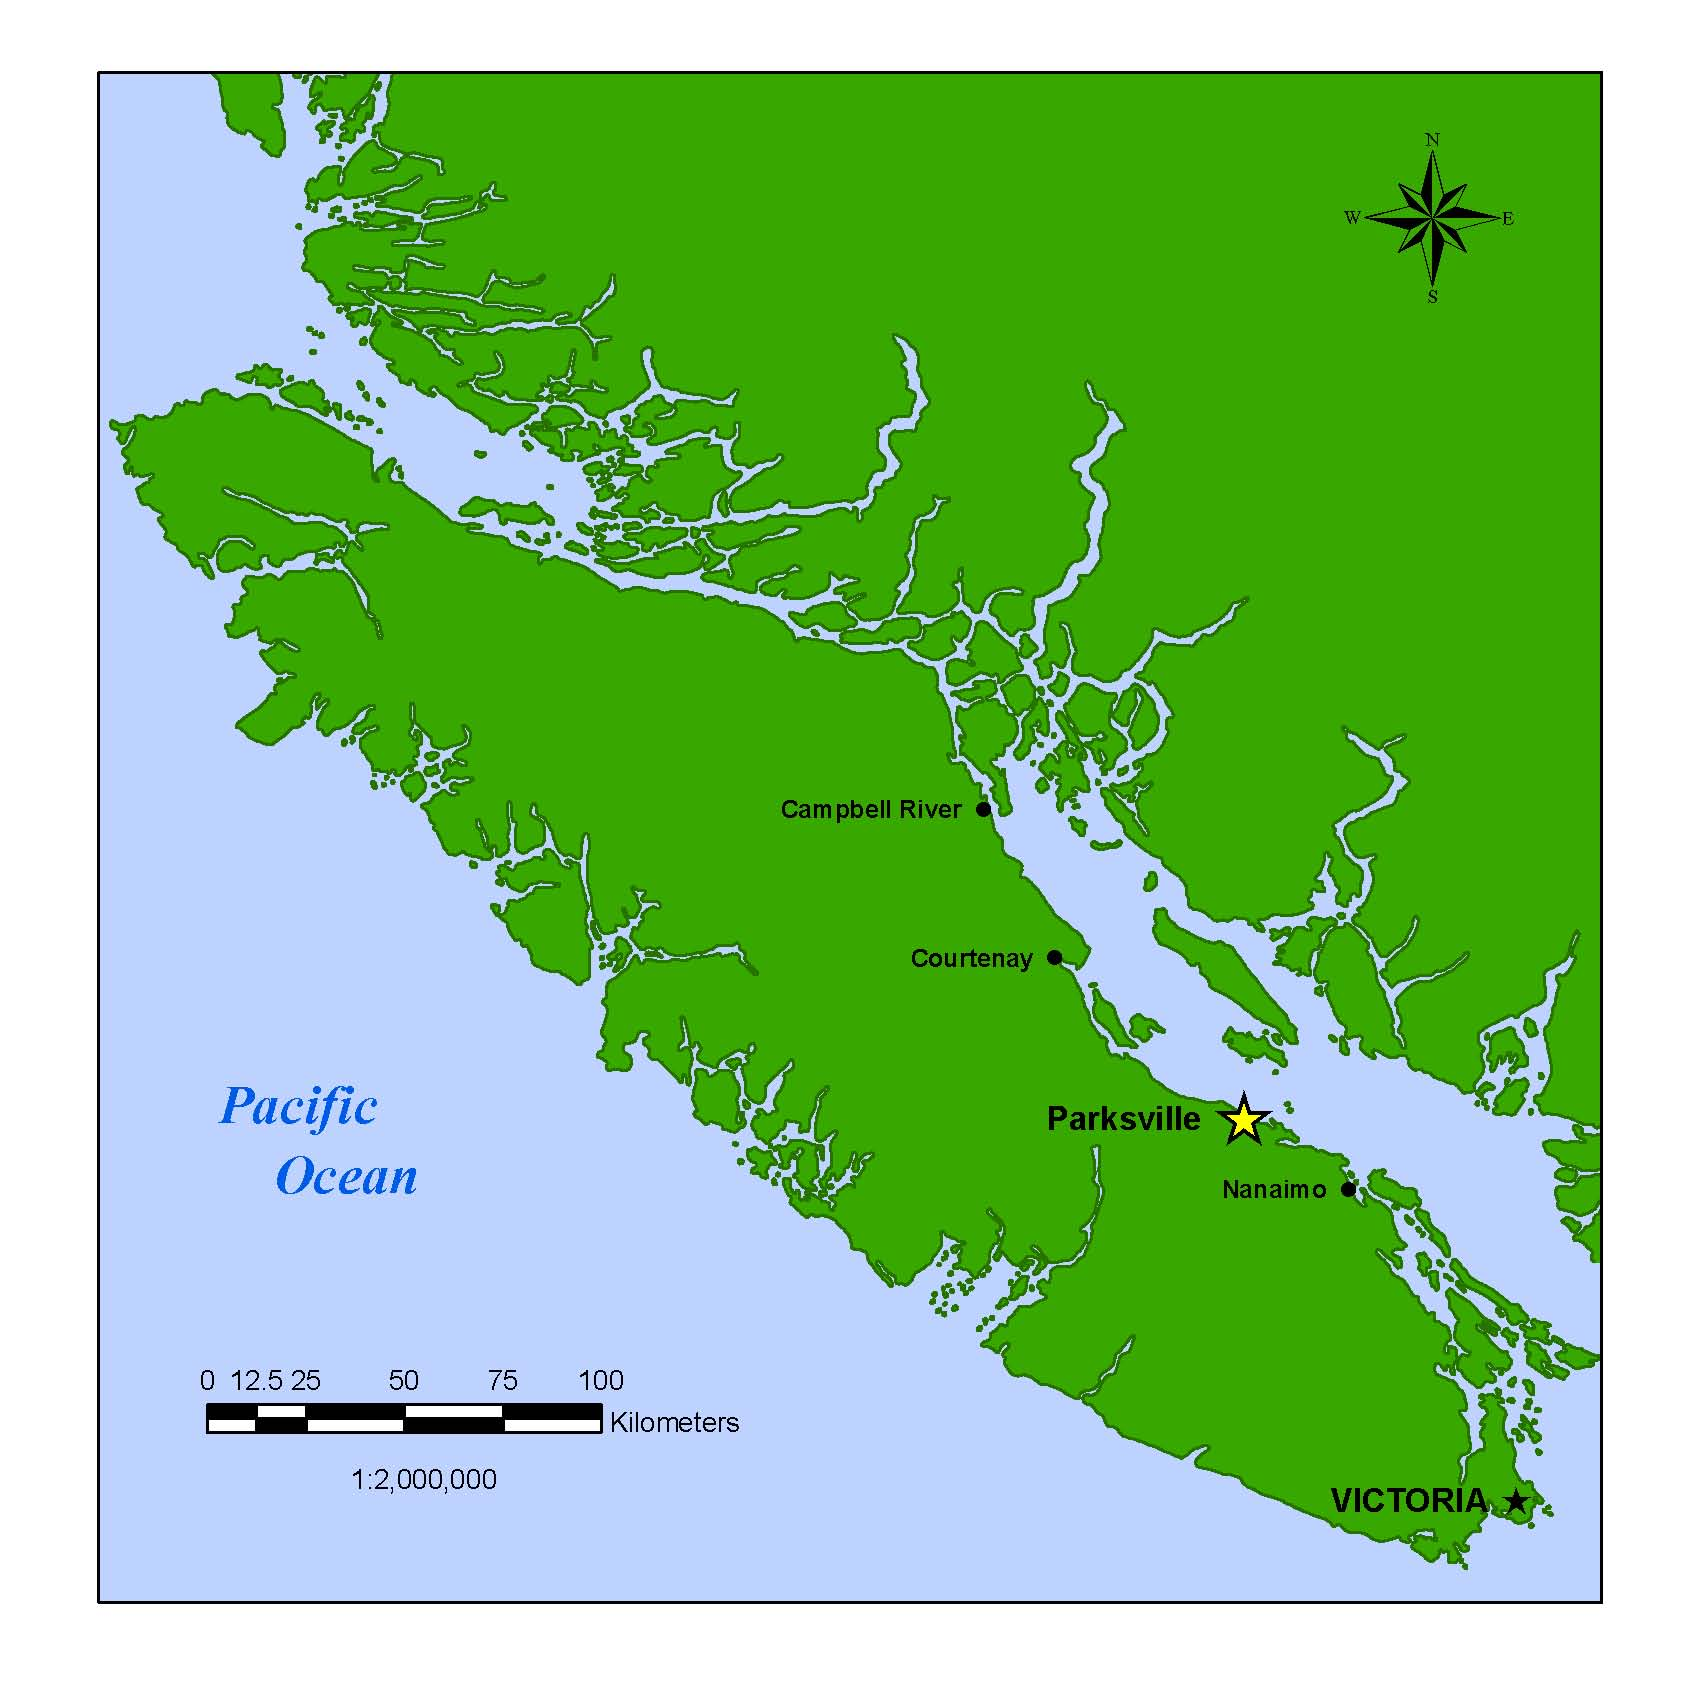 View Larger Map of Vancouver Island